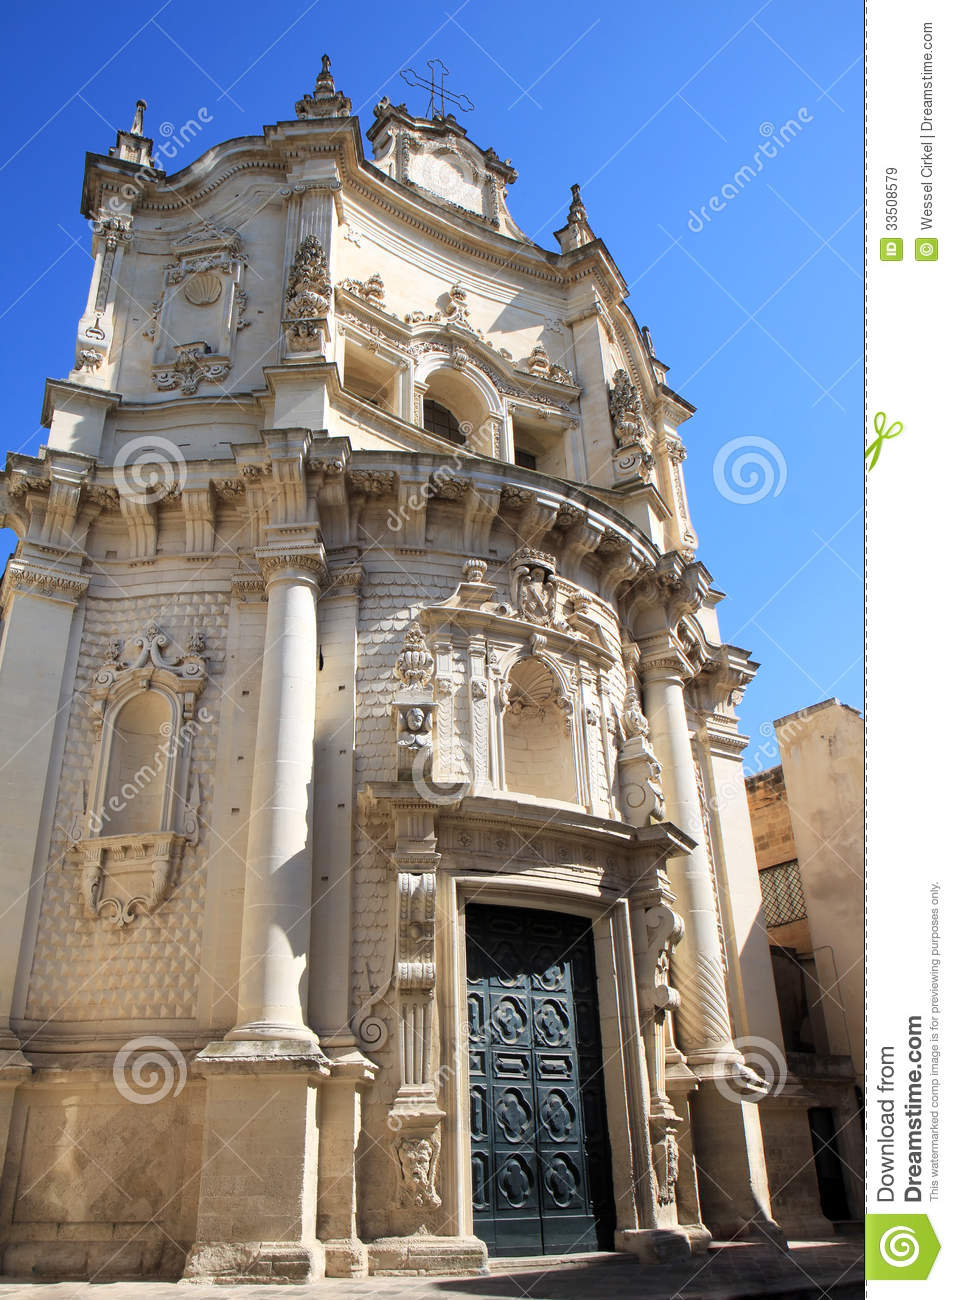 Baroque facade of chiesa di san matteo lecce italy stock for Baroque italien